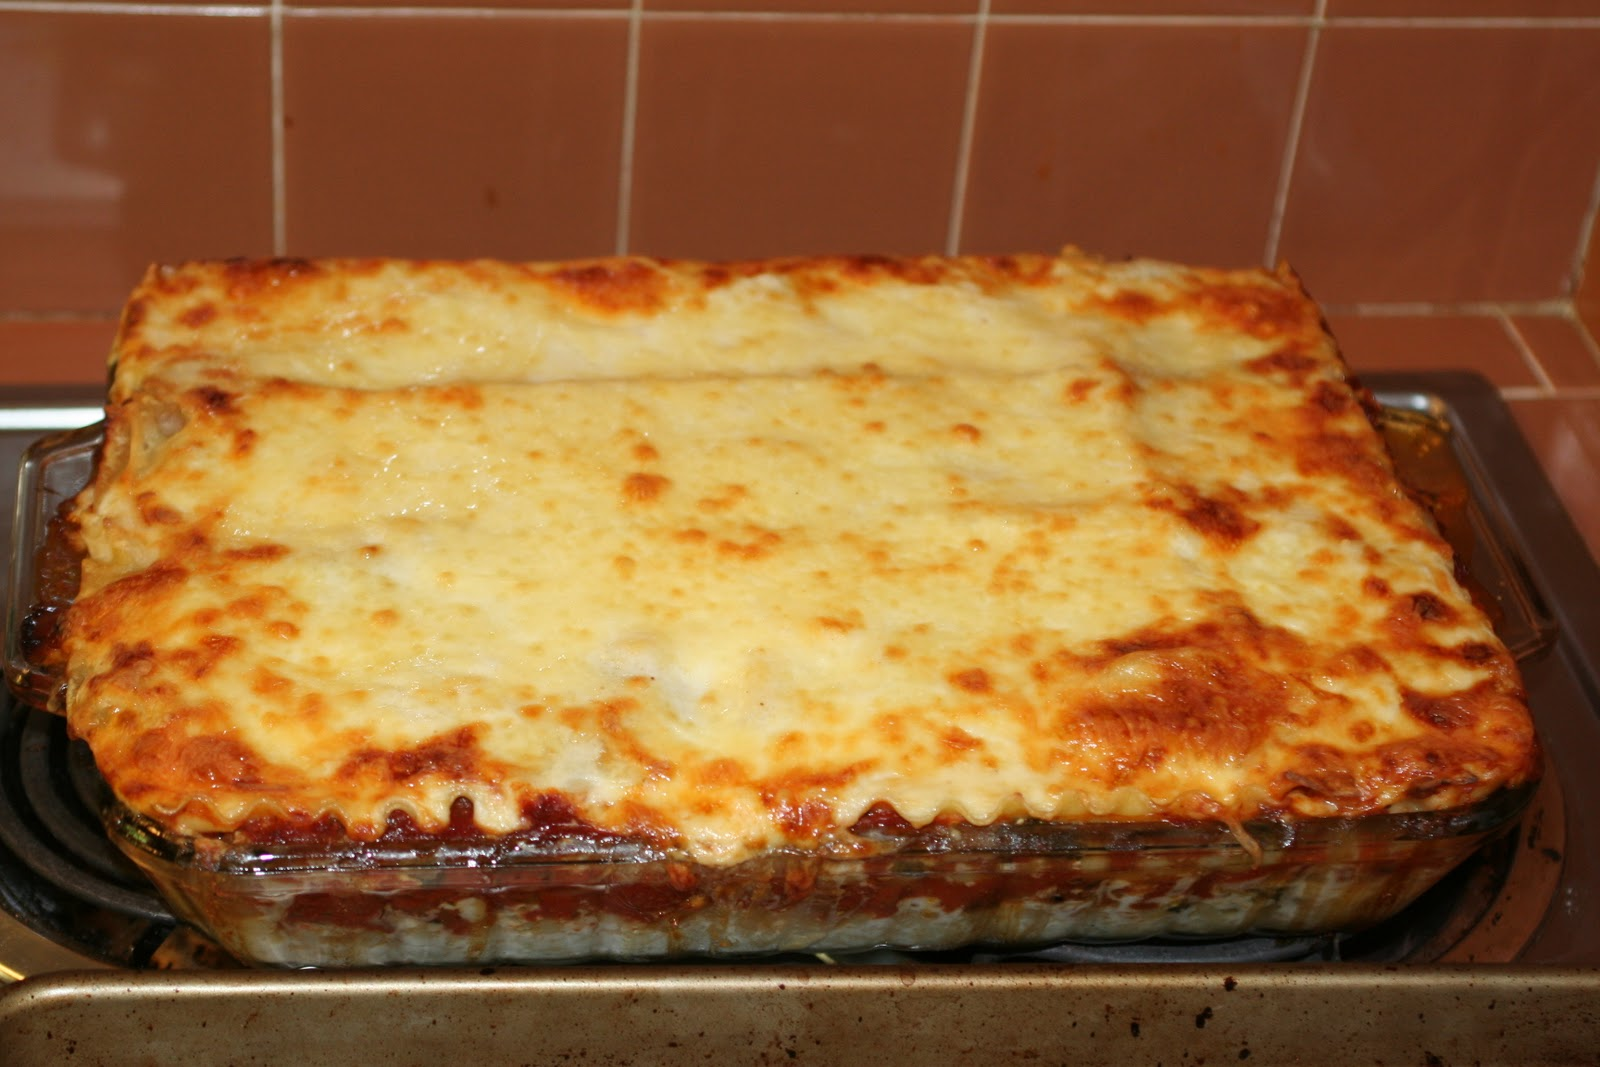 This Vegetarian Lasagna recipe was sent to me from, Olivia Hinebaugh ...